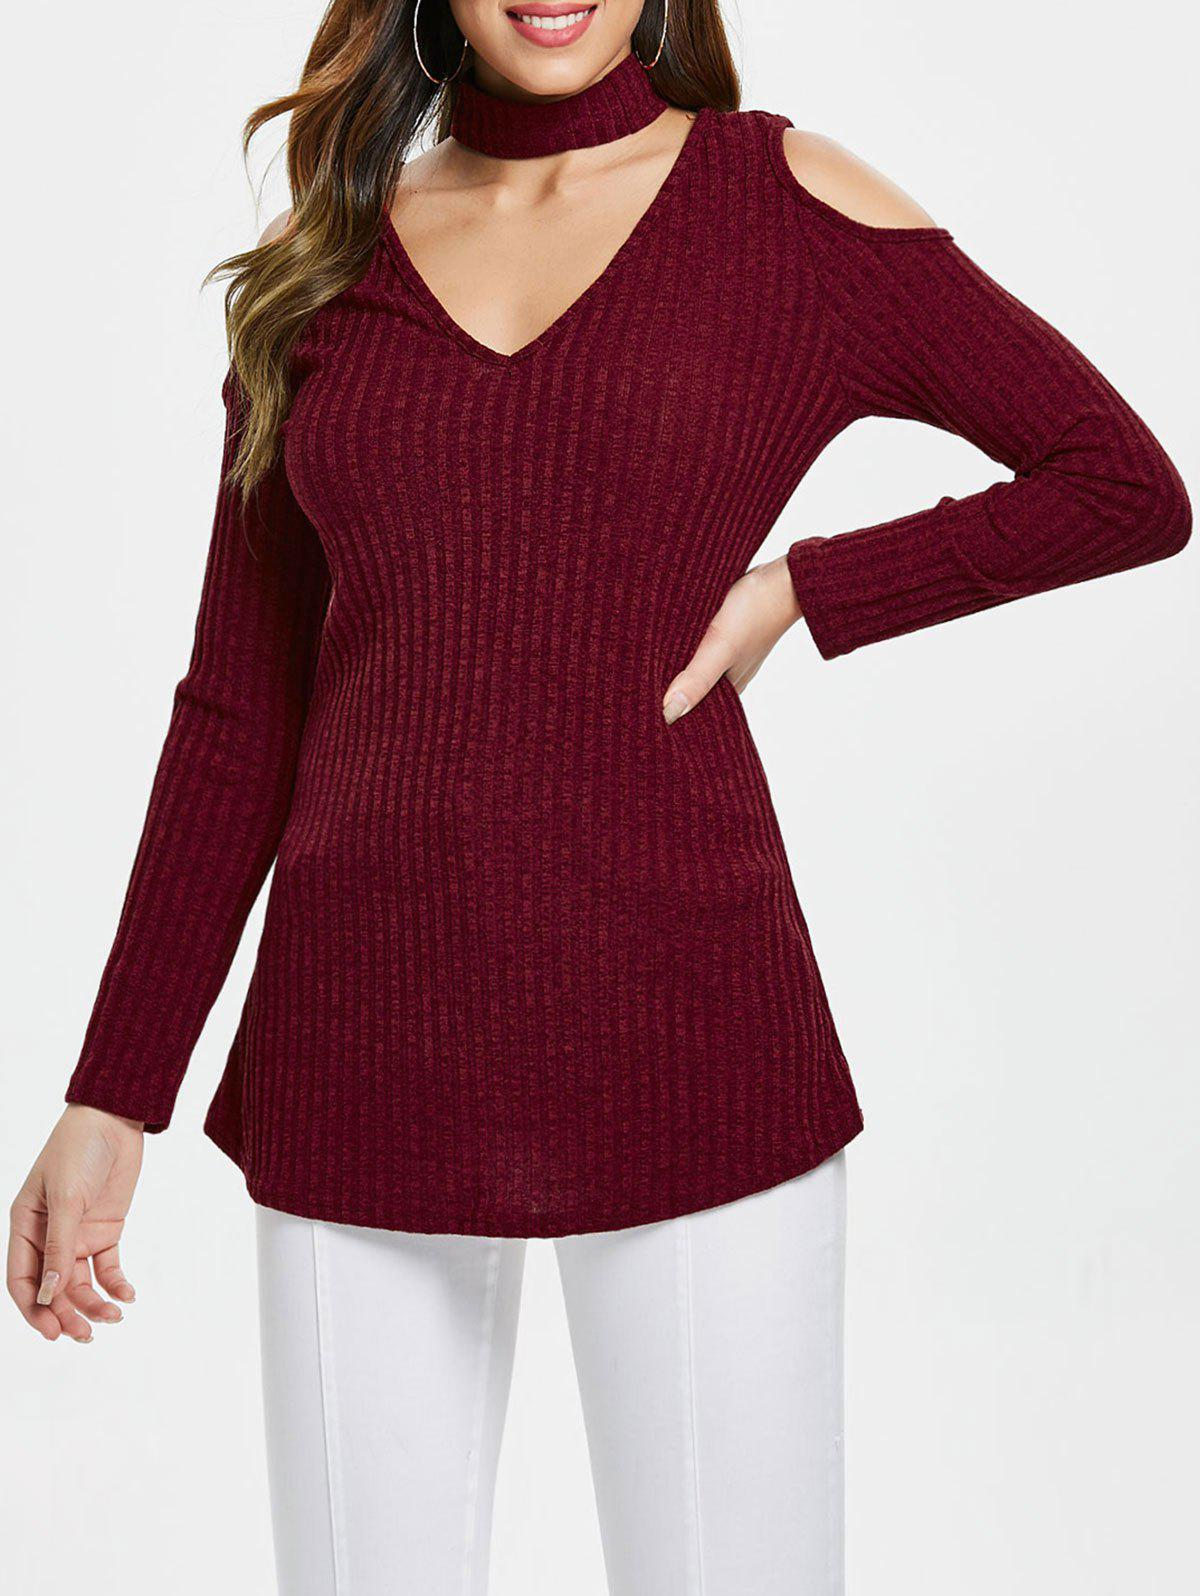 V Neck Cold Shoulder Tunic Top - RED WINE XL